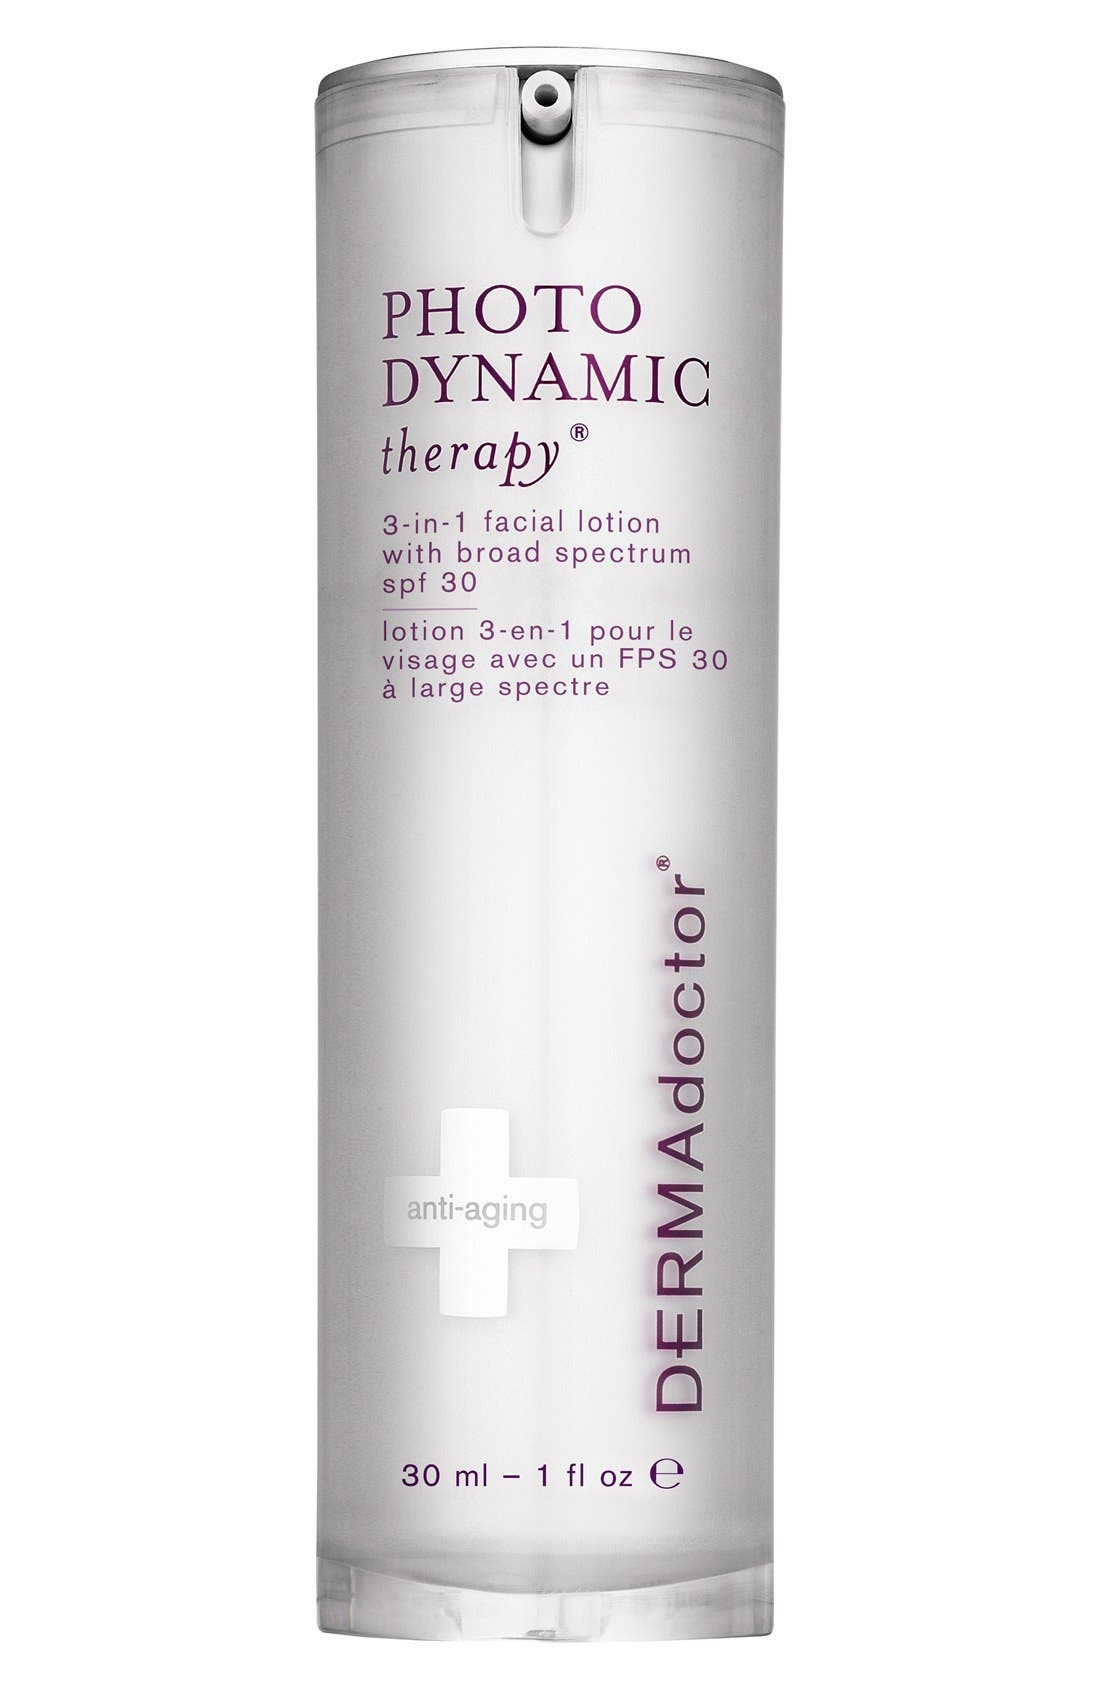 DERMAdoctor® 'PHOTODYNAMIC therapy®' 3-in-1 Facial Lotion with Broad Spectrum SPF 30